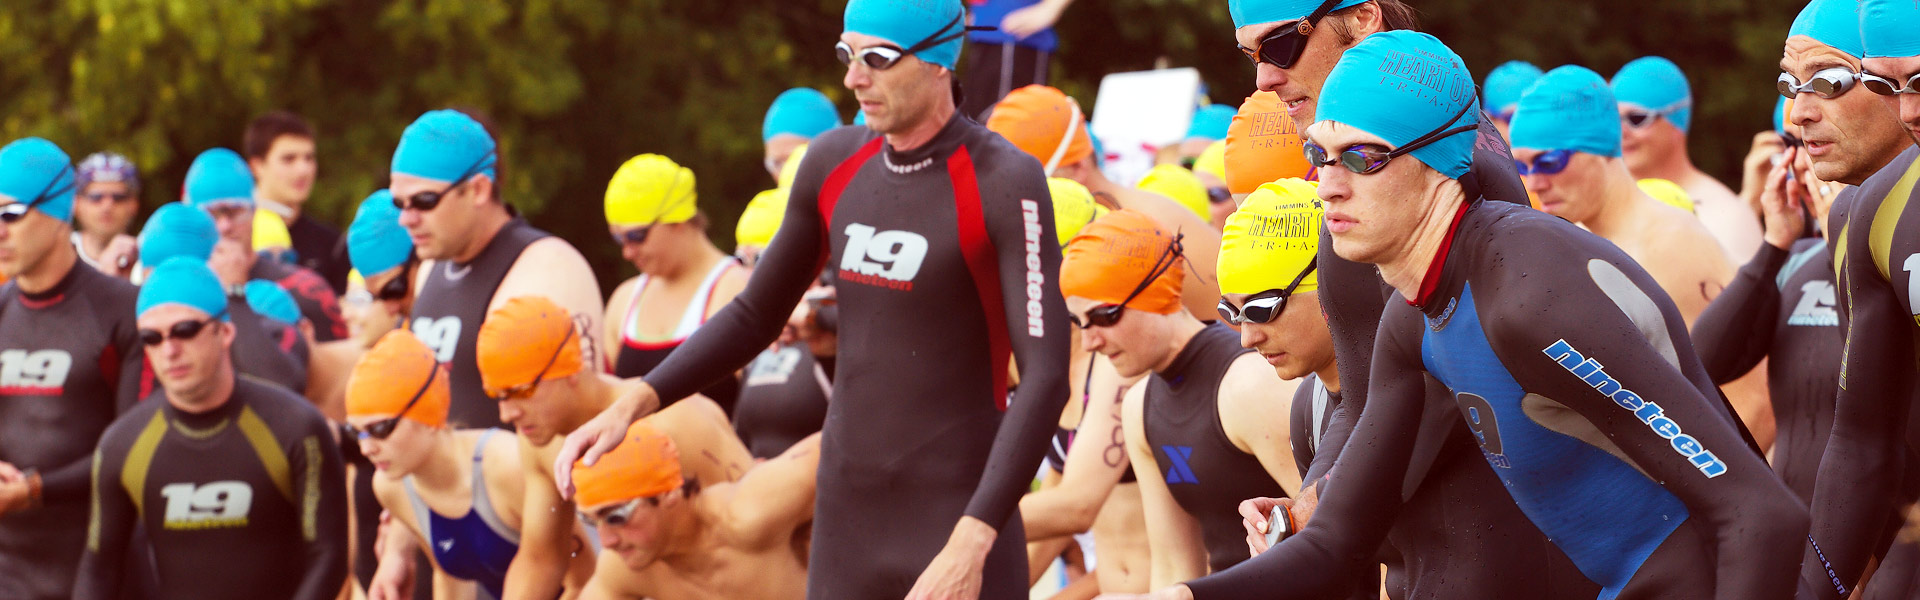 <h2>Heart of Gold Triathlon</h2> Swim, bike and run on July 14, 2013 in the fastest growing sport in North America!